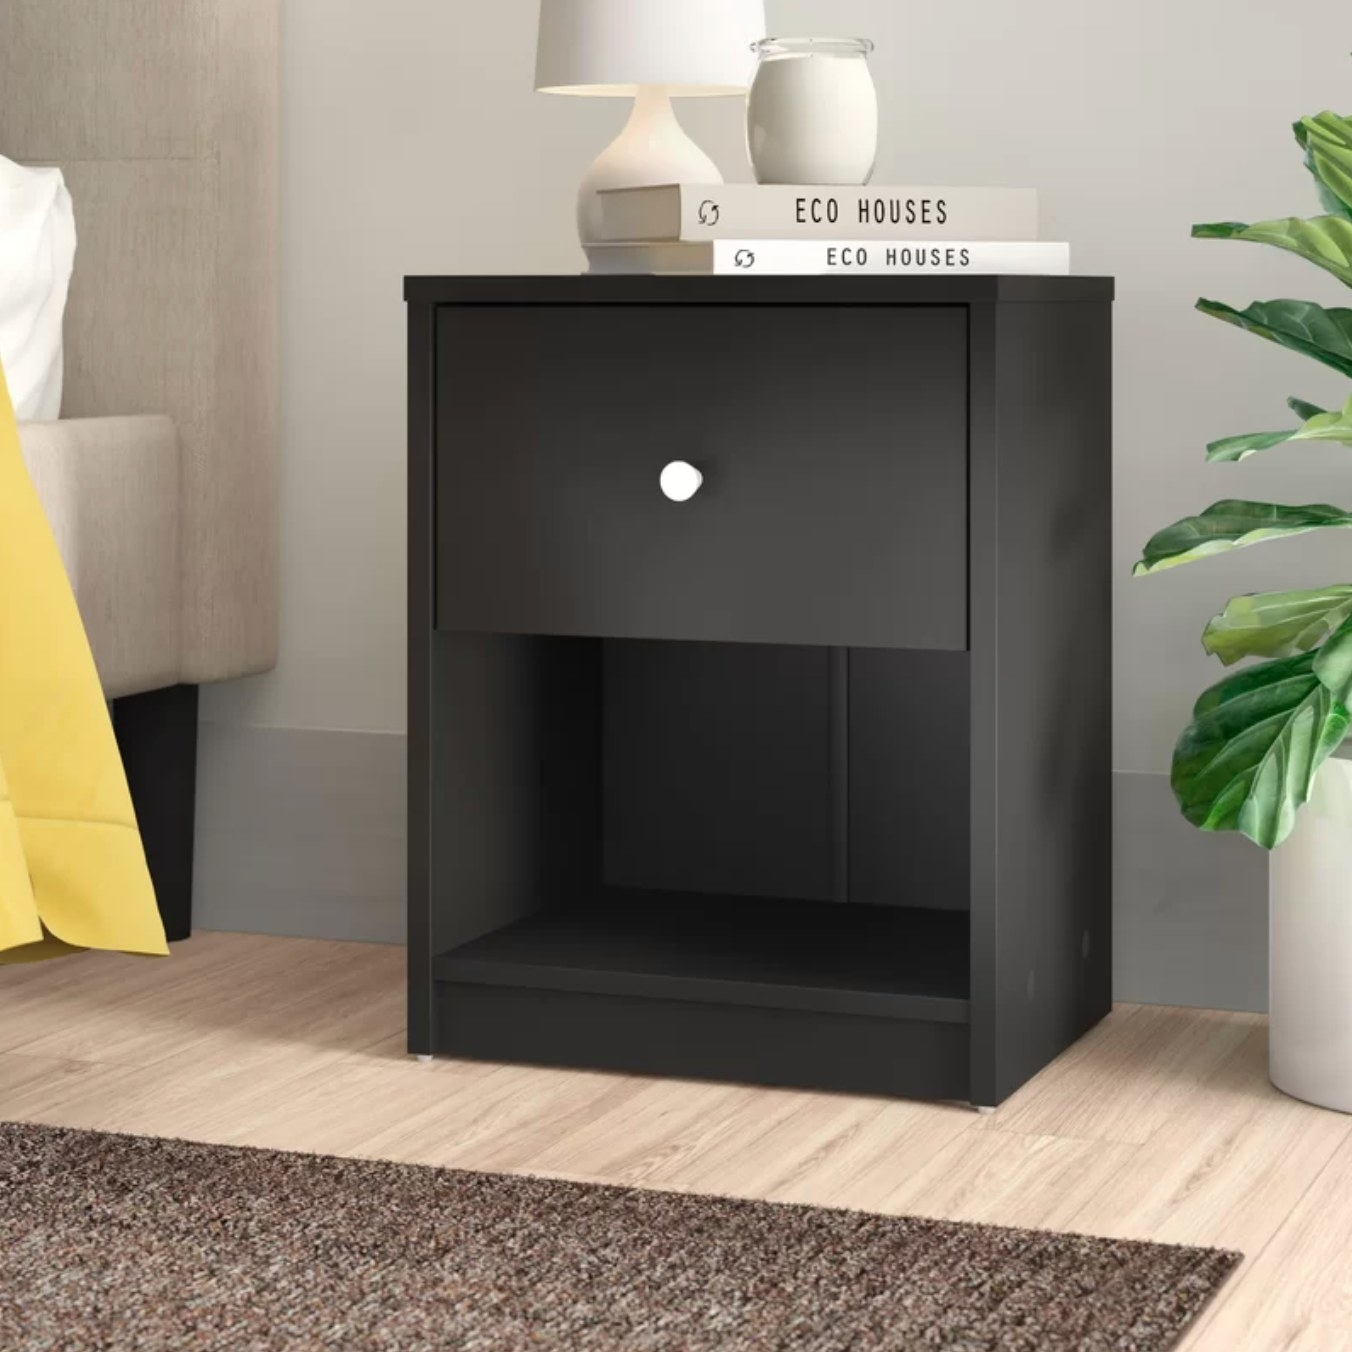 The one drawer dresser in black